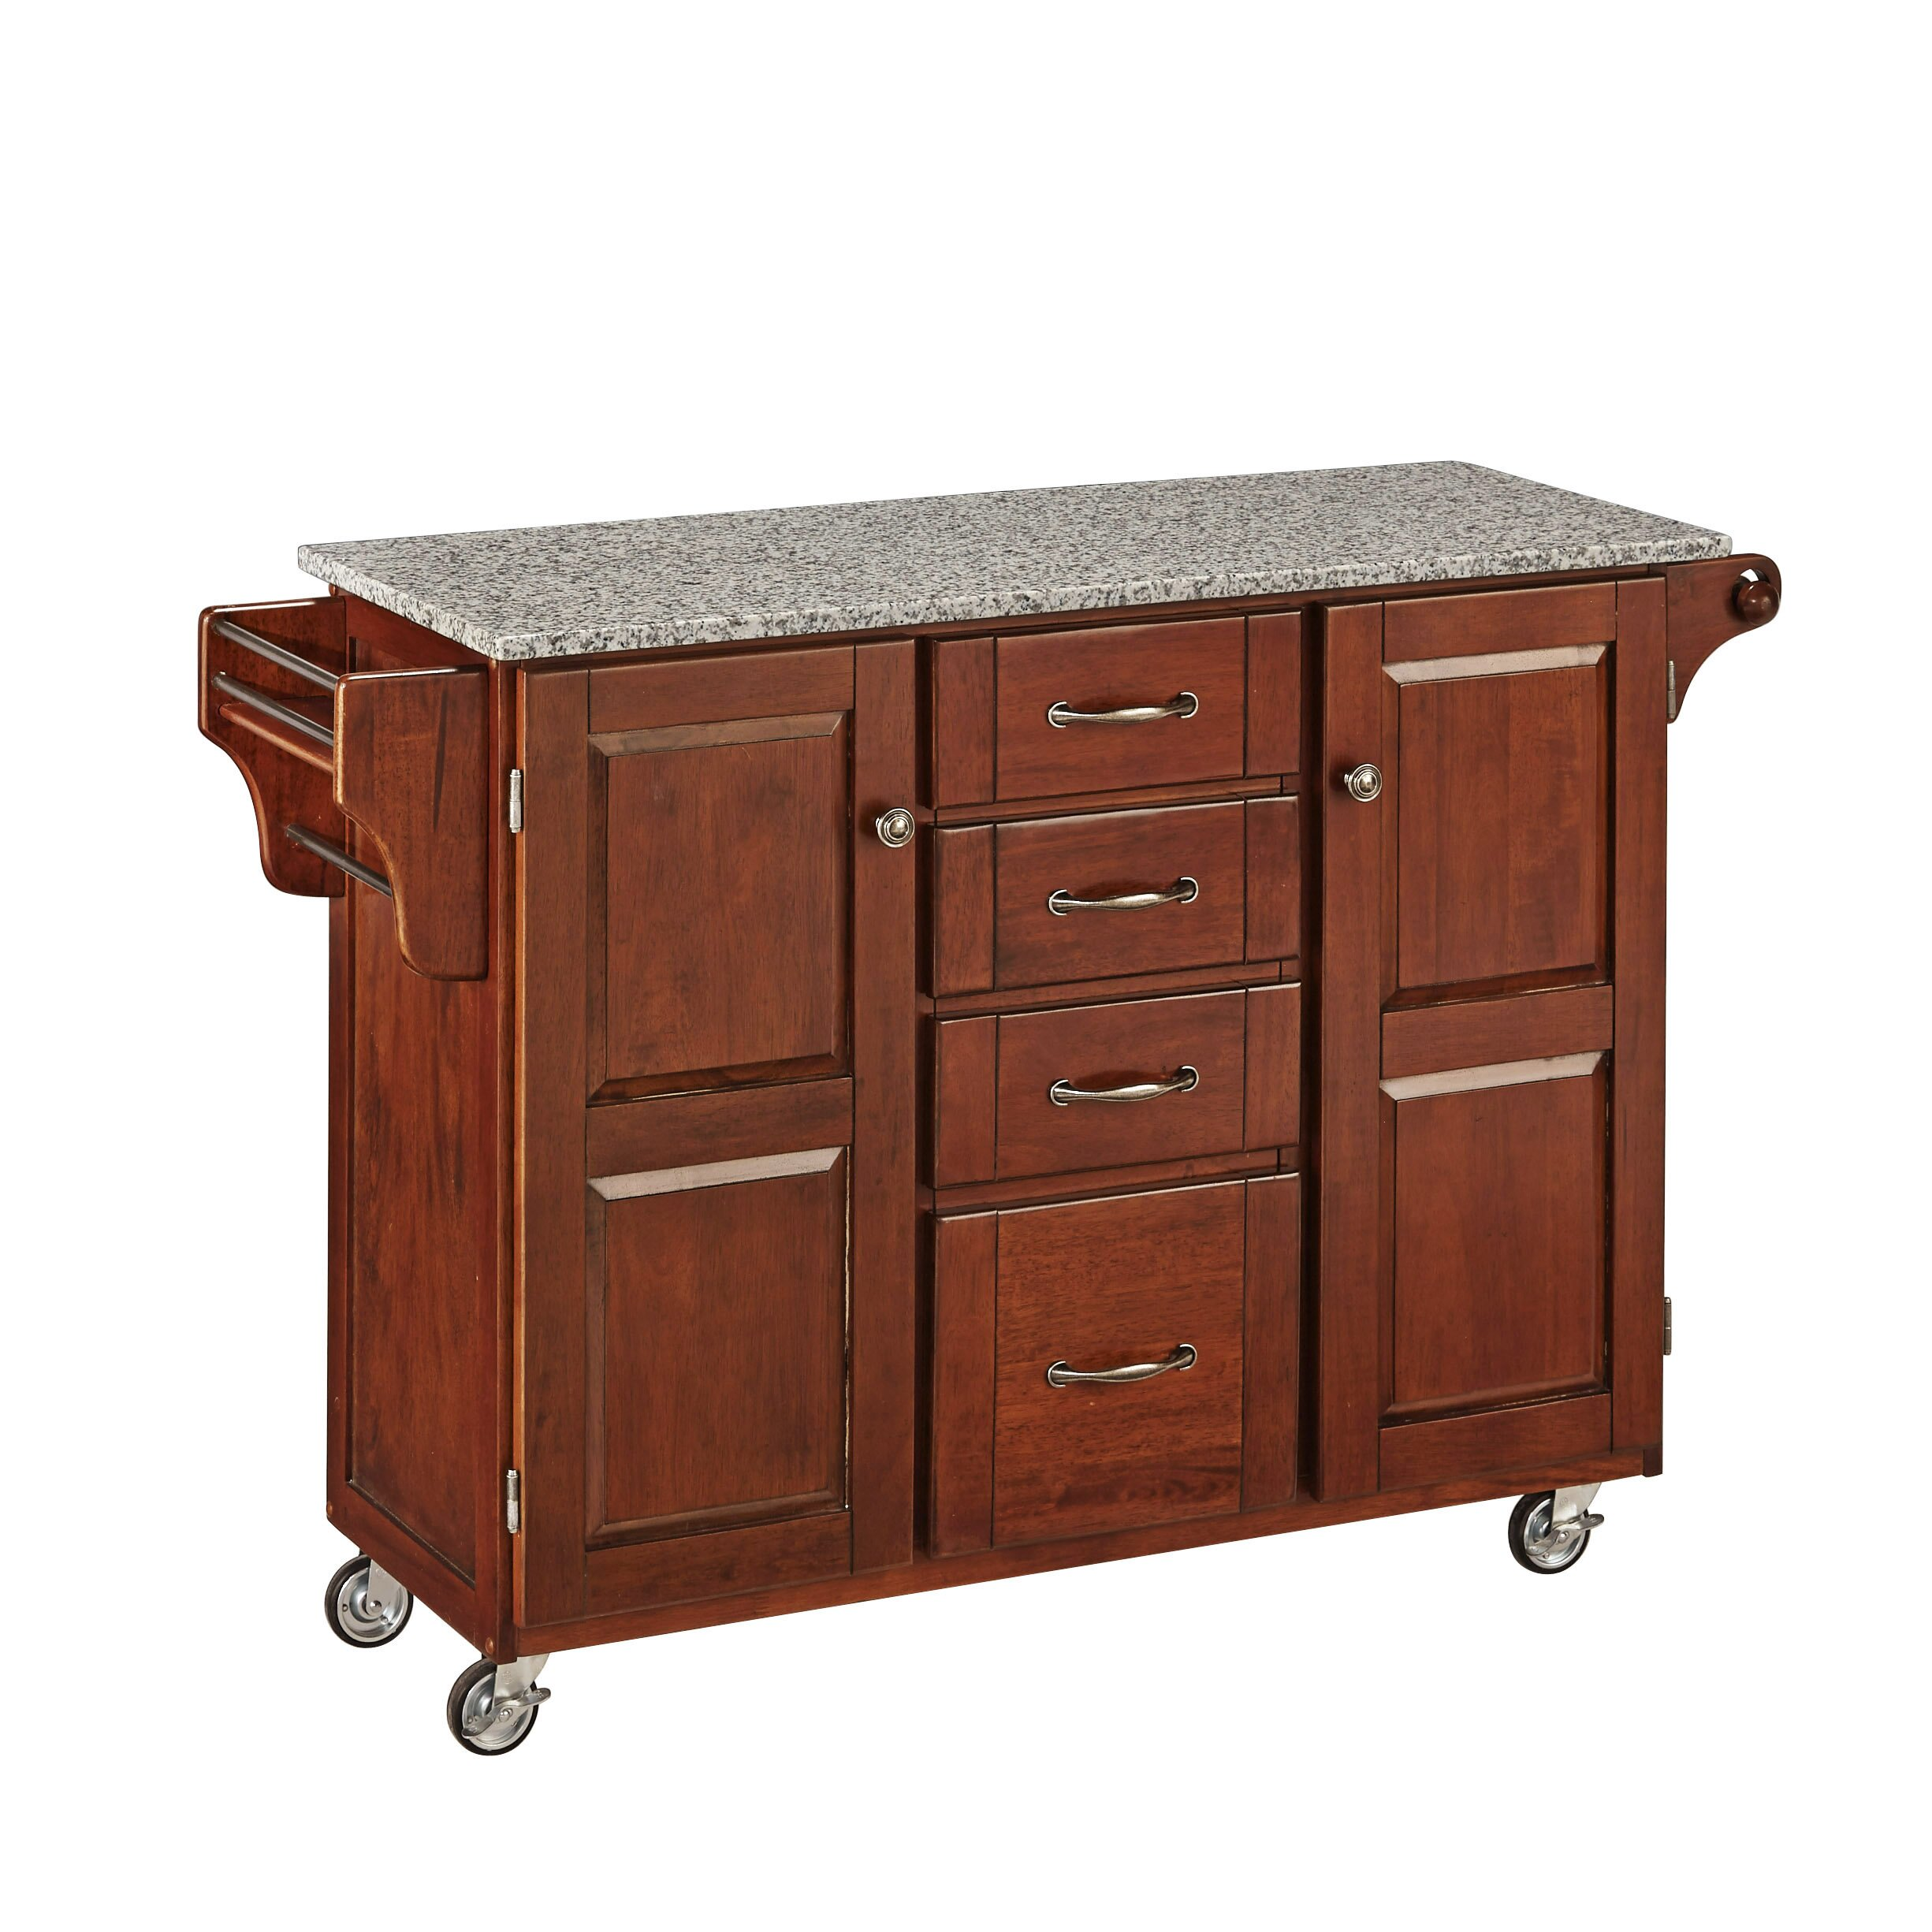 Granite Top Kitchen Island Cart August Grove Adelle A Cart Kitchen Island With Granite Top